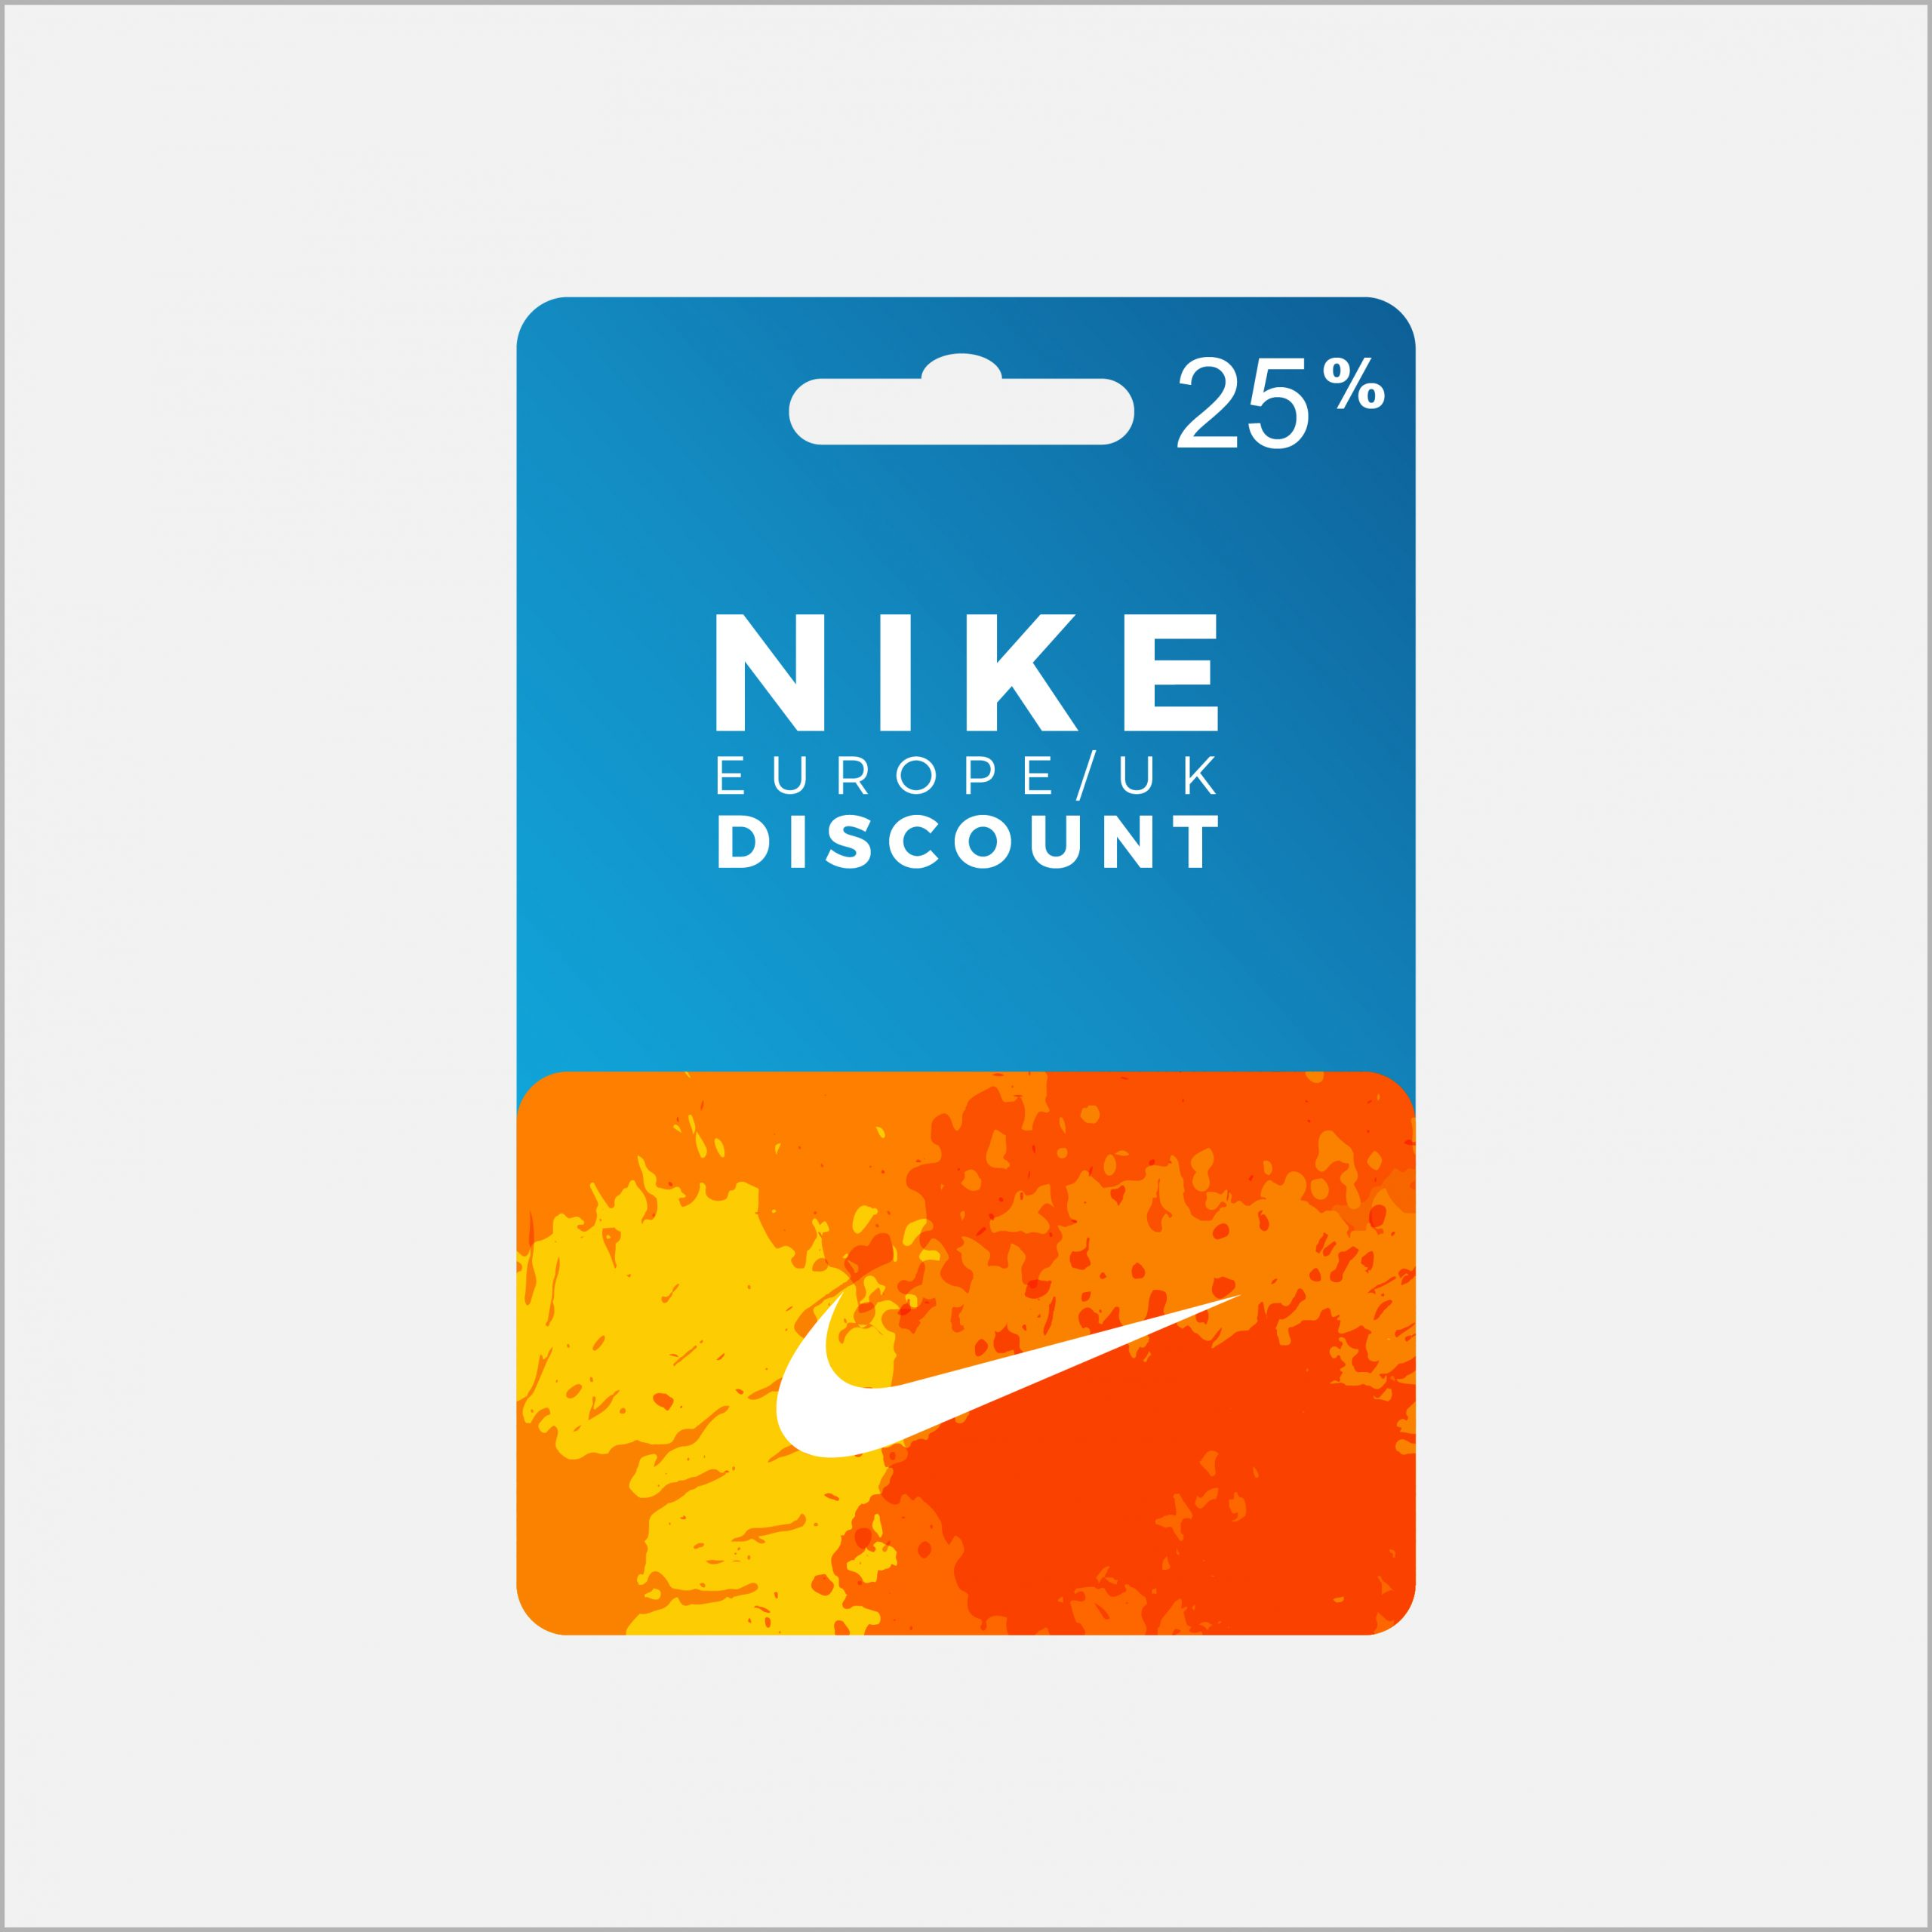 En Comercio Comparar  Nike Discount Code 25% for UK and EU 2020 - Nike Discount Codes